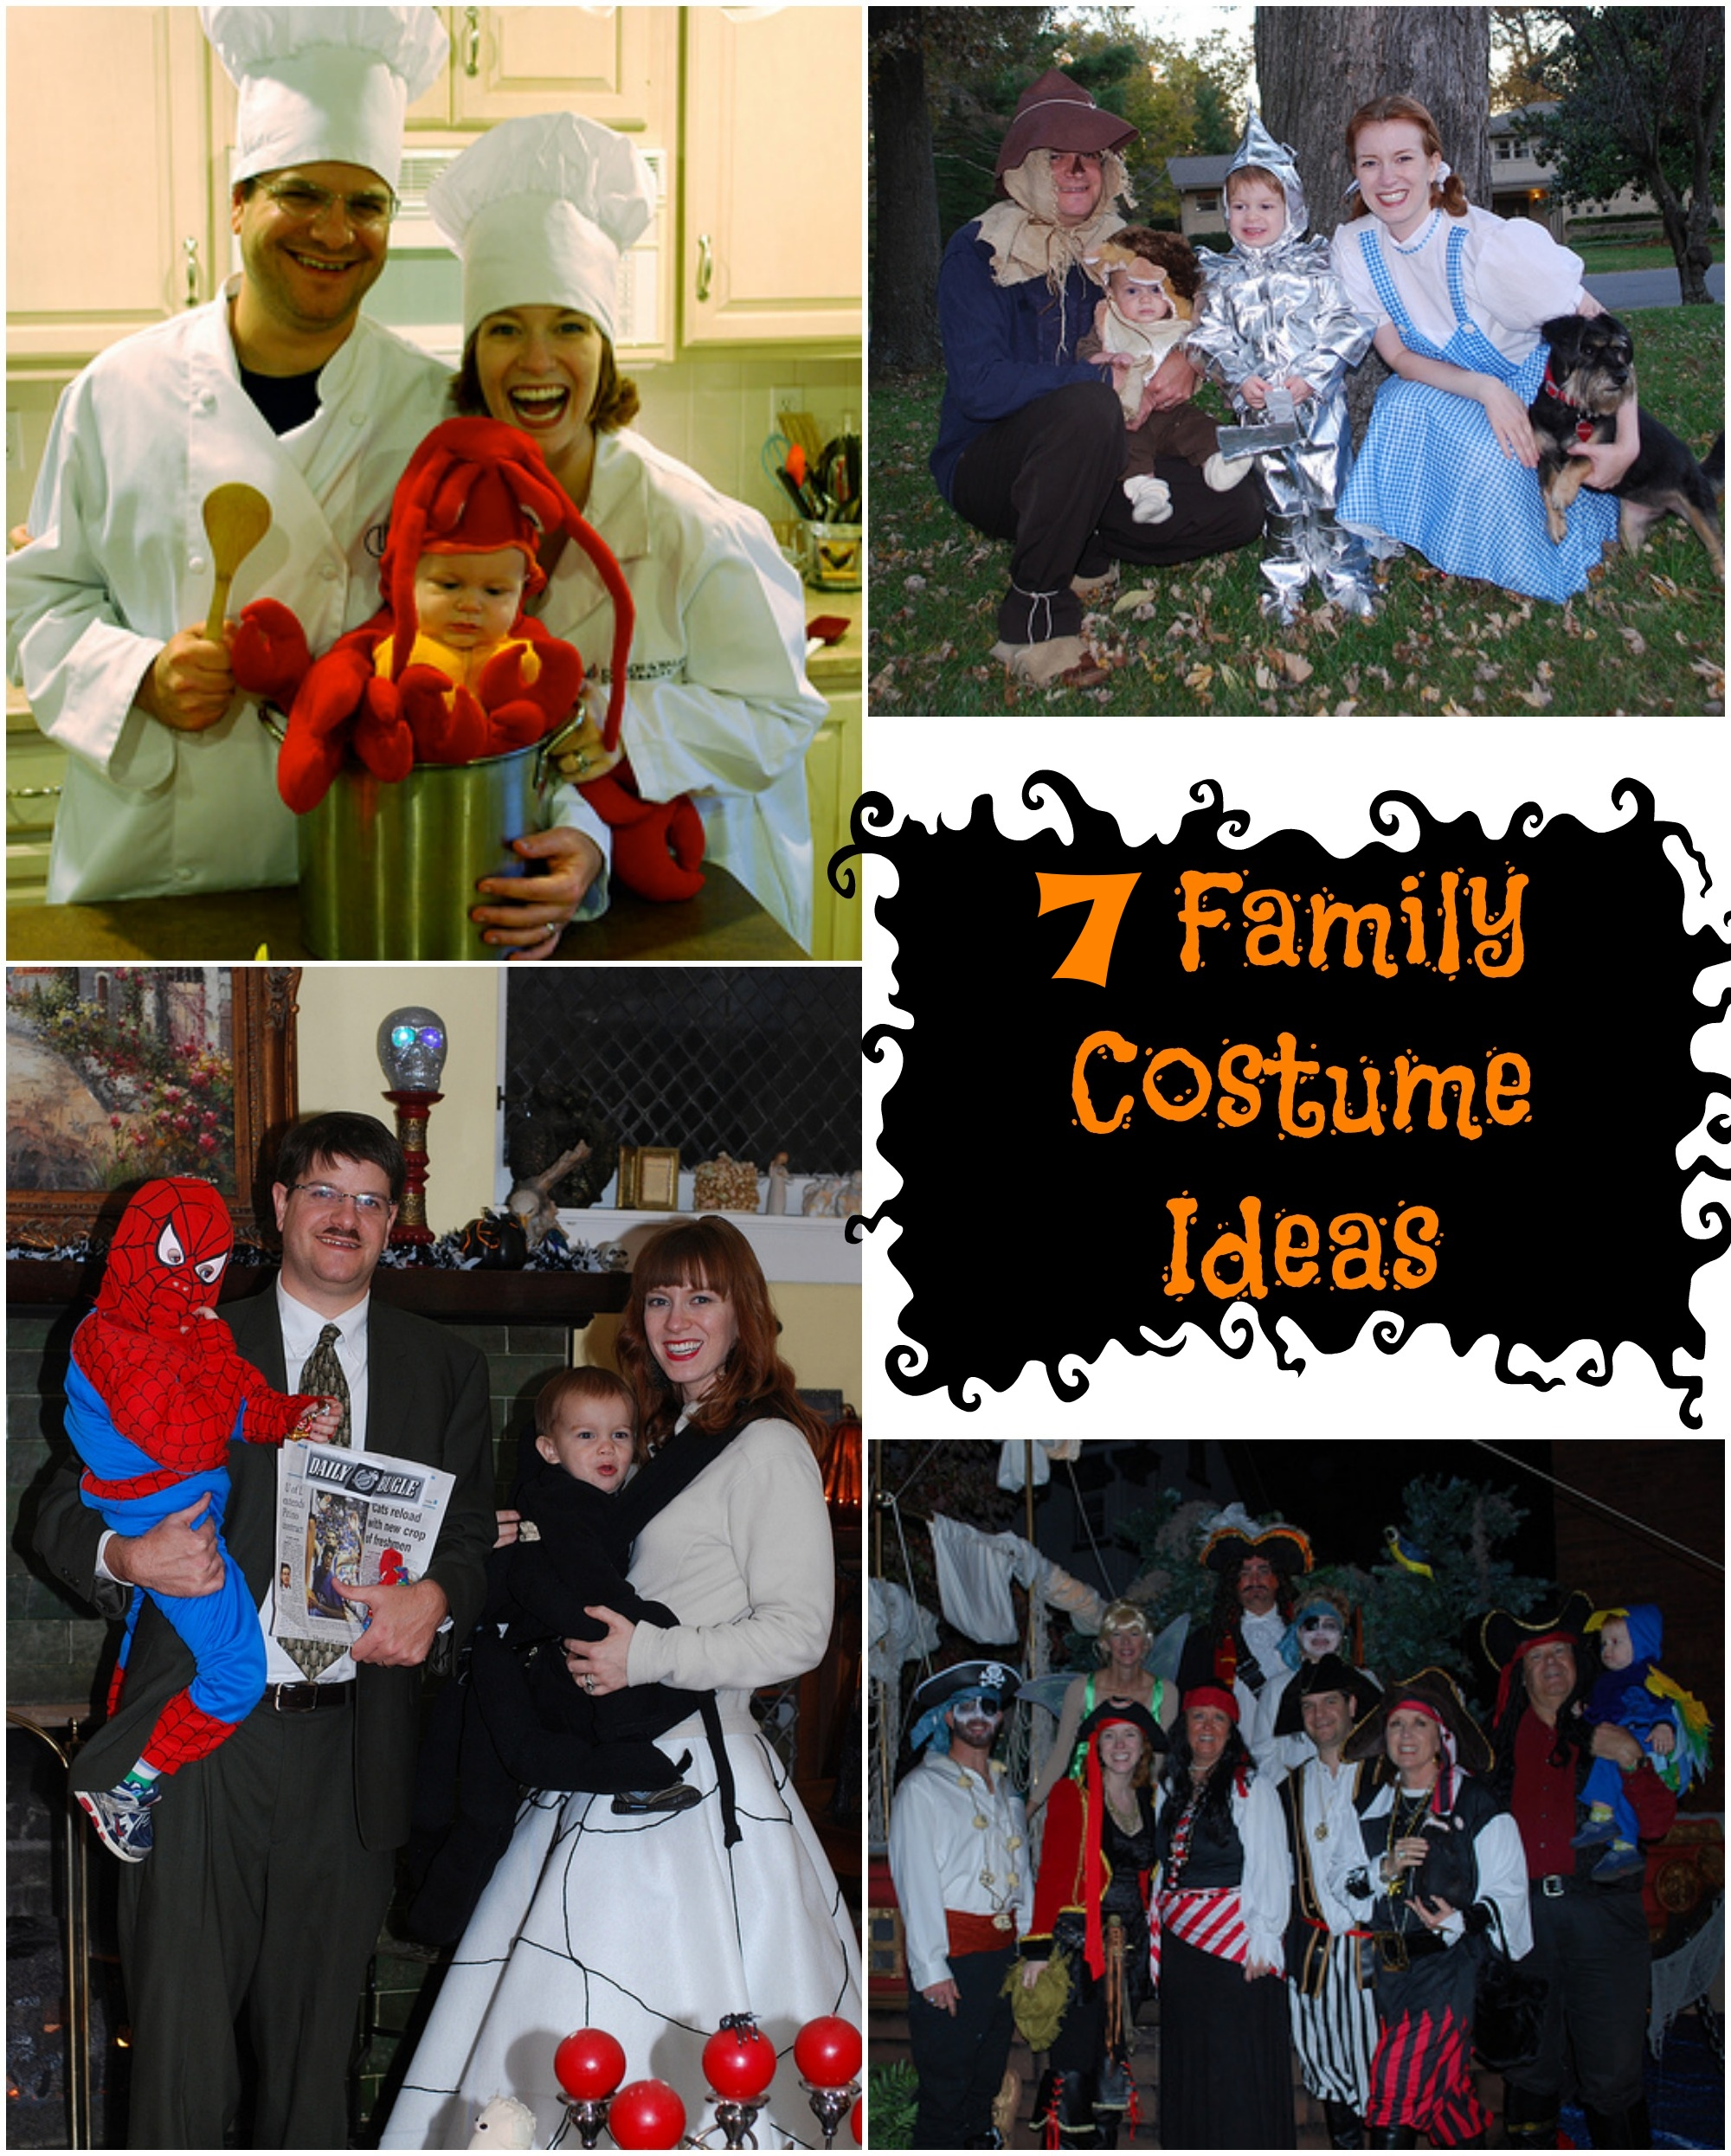 family-costume-ideas.jpg.jpg